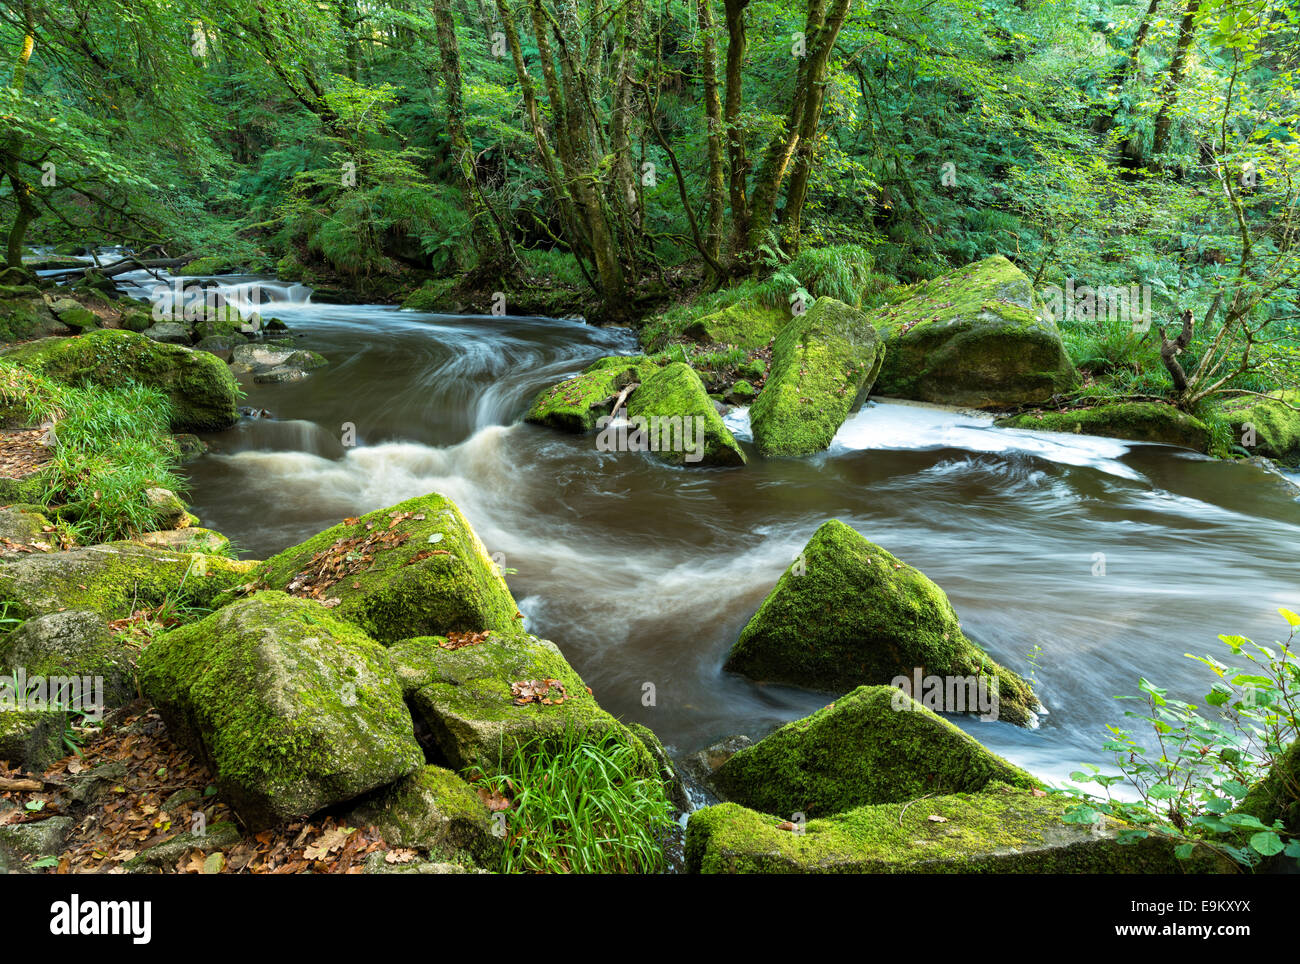 The river Fowey flowing through Bodmin Moor in Cornwall at Golitha Falls - Stock Image